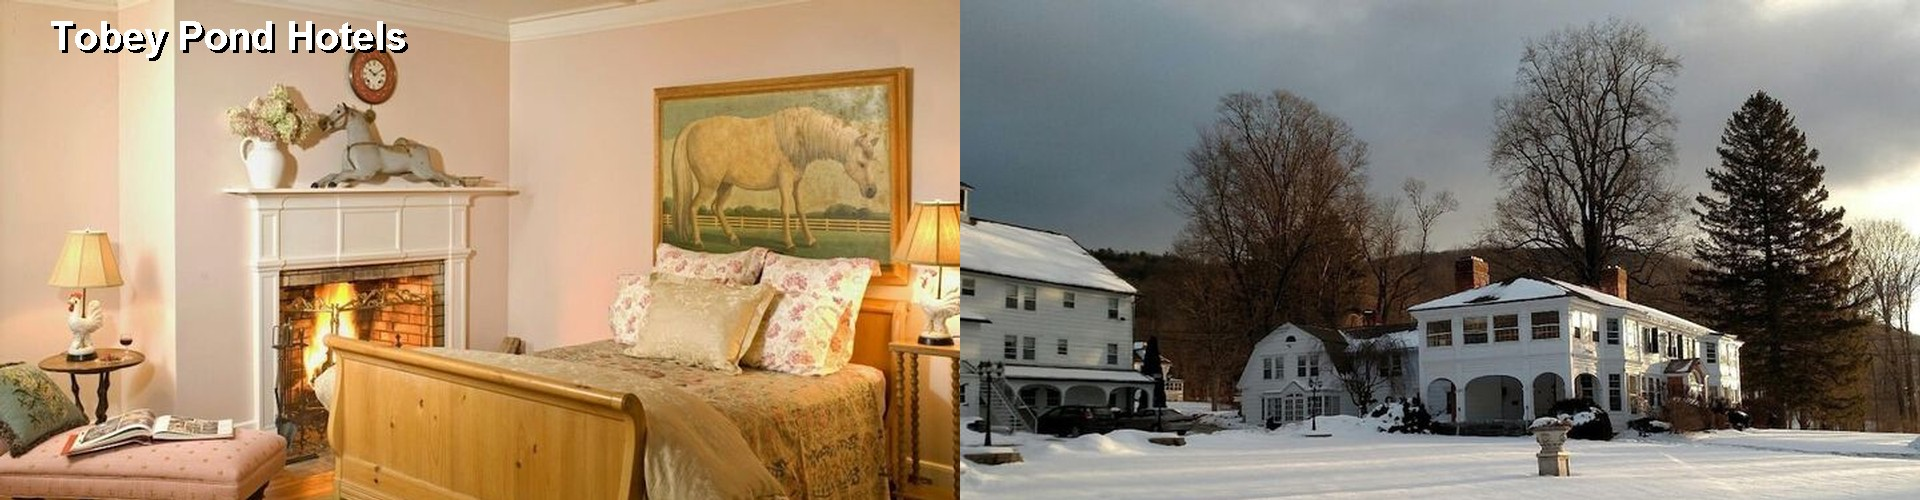 5 Best Hotels near Tobey Pond